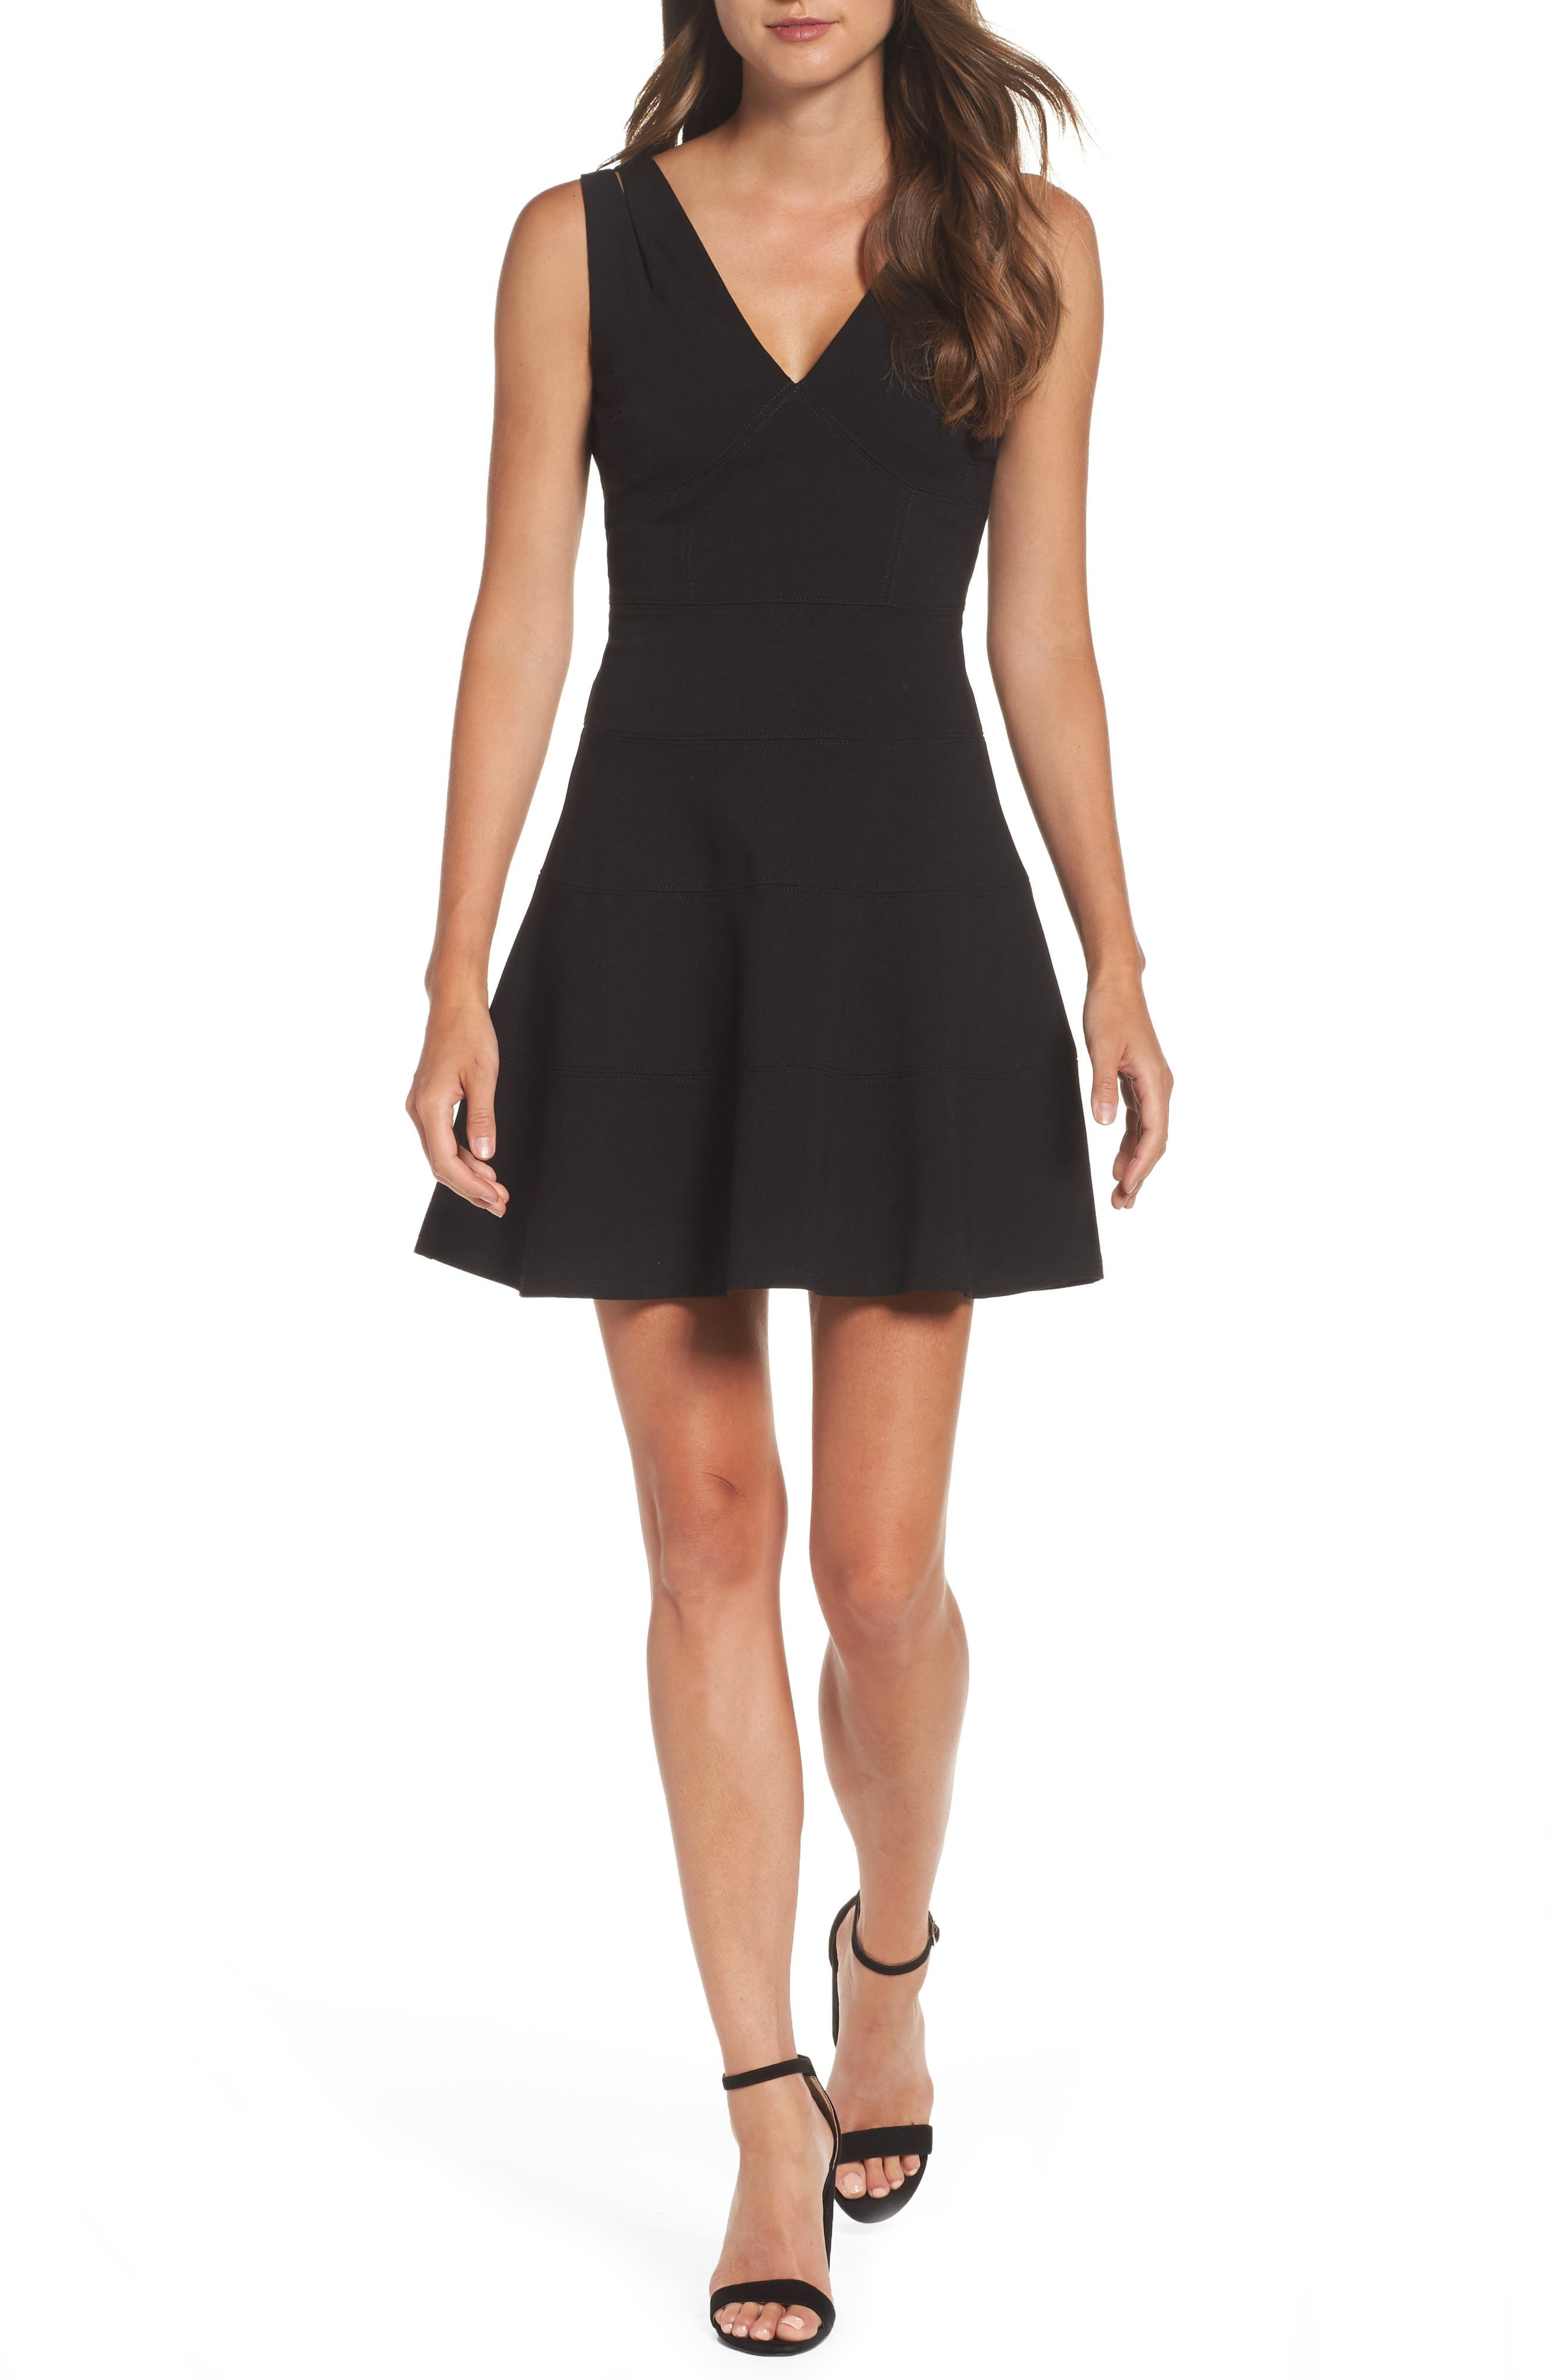 ALI & JAY, Fit & Flare Dress, Main thumbnail 1, color, 001